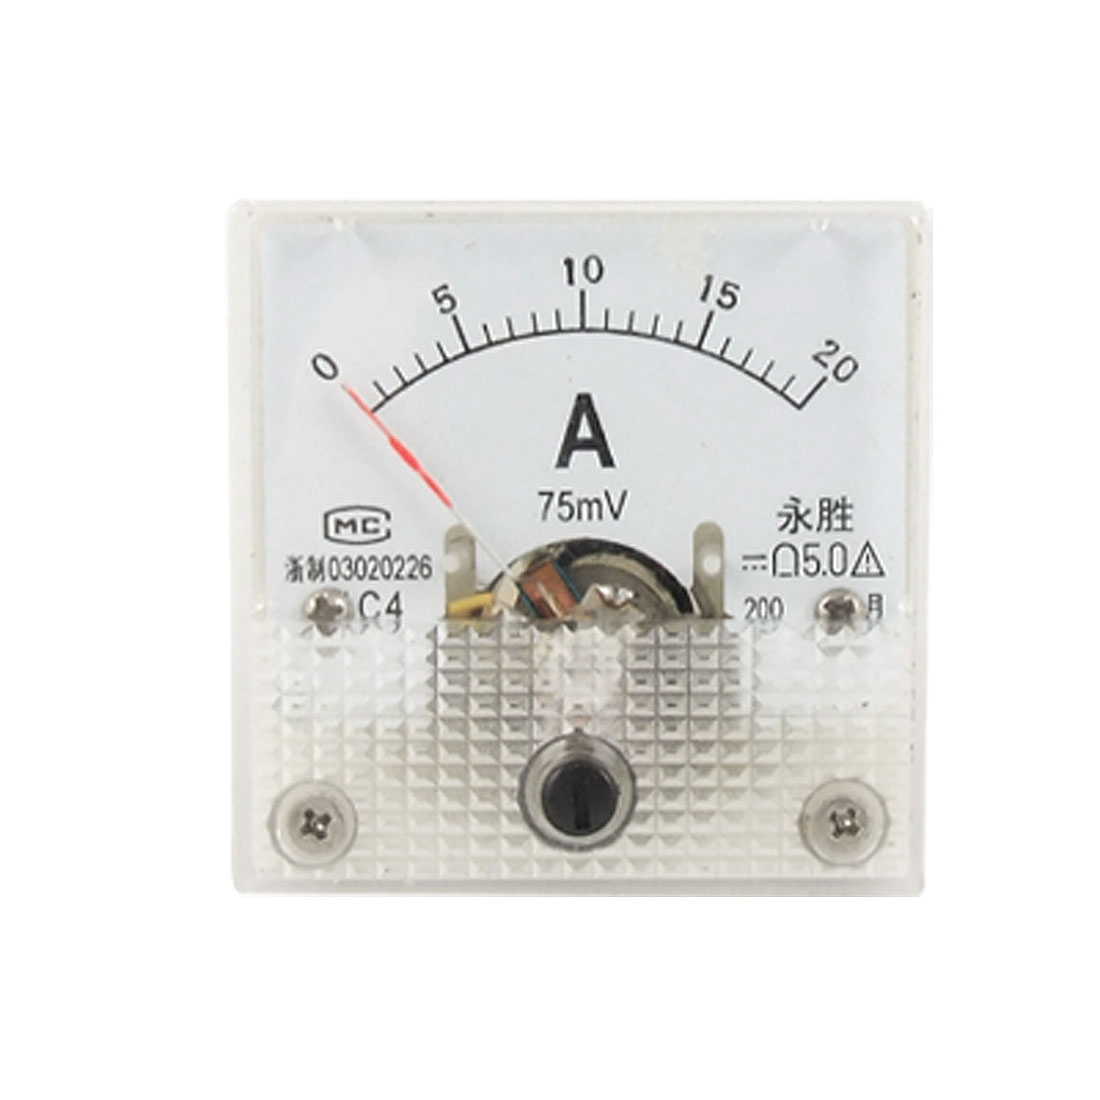 91C4 DC 0-20A Current Amperemeter Analog Panel Meter